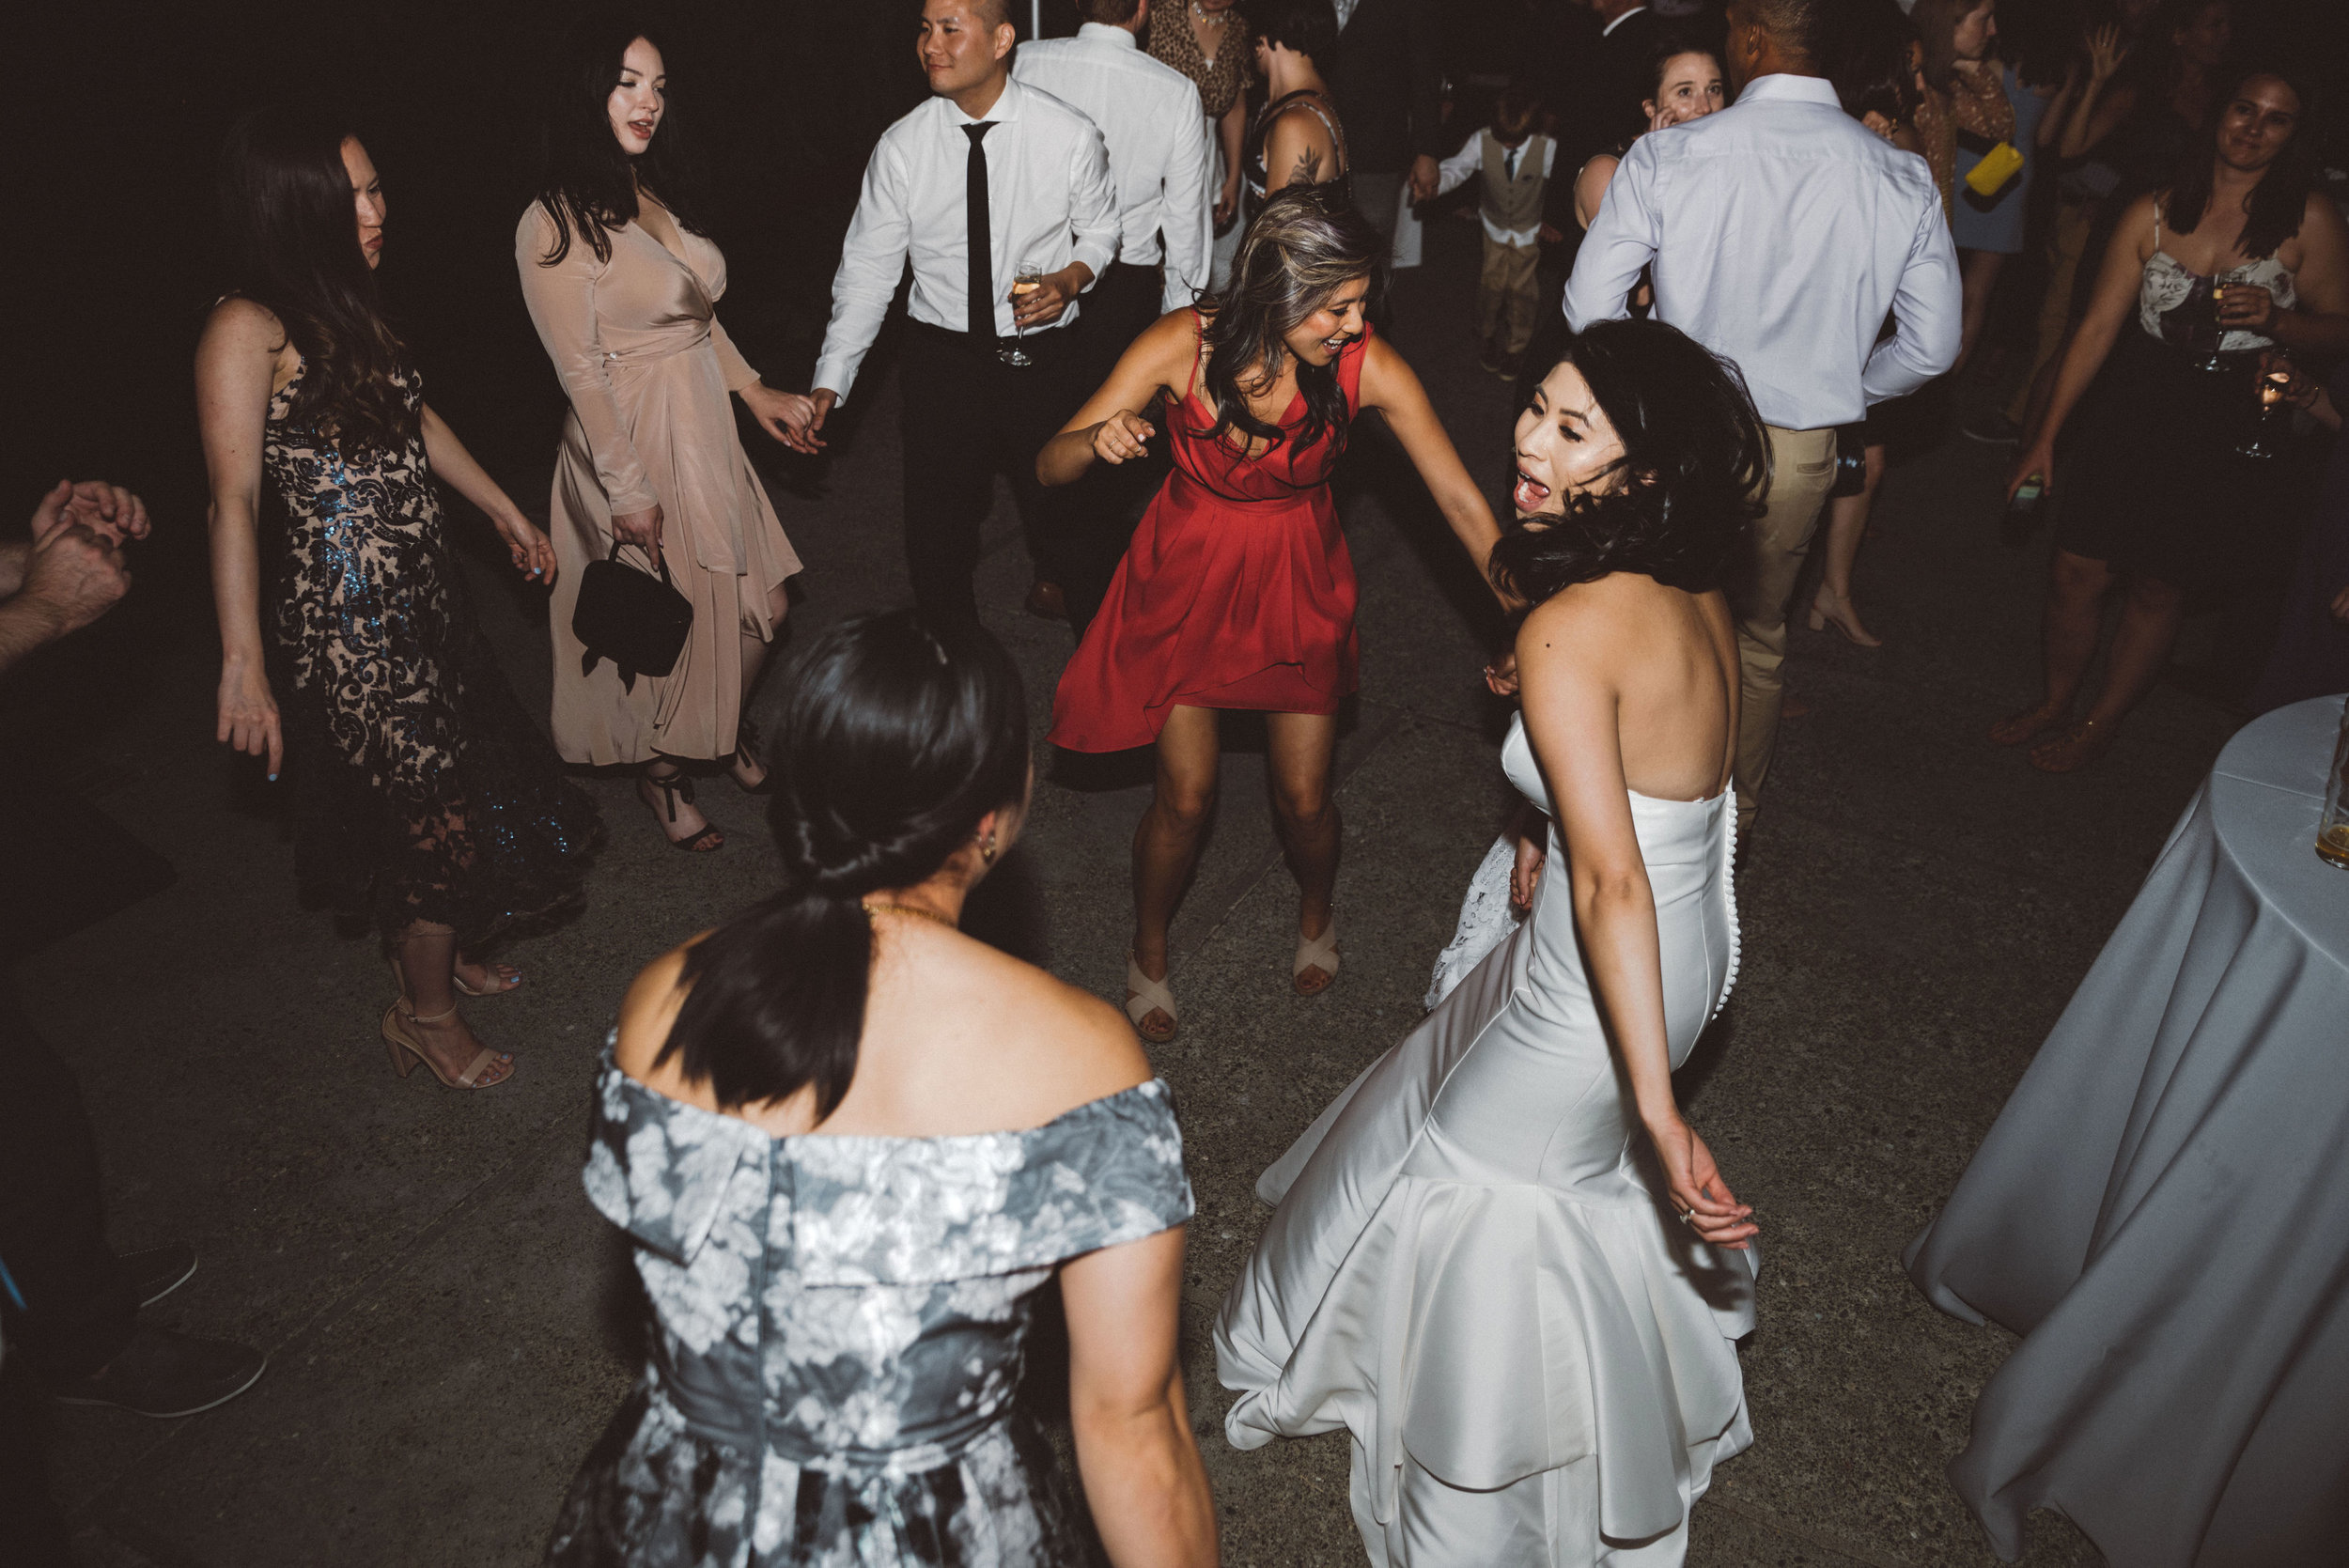 Having a blast + documenting the real - It's your party and you can dance all night long, if you want to. However you'd like to spend your day with your loved ones, I'll be there to document it and probably dancing, too.